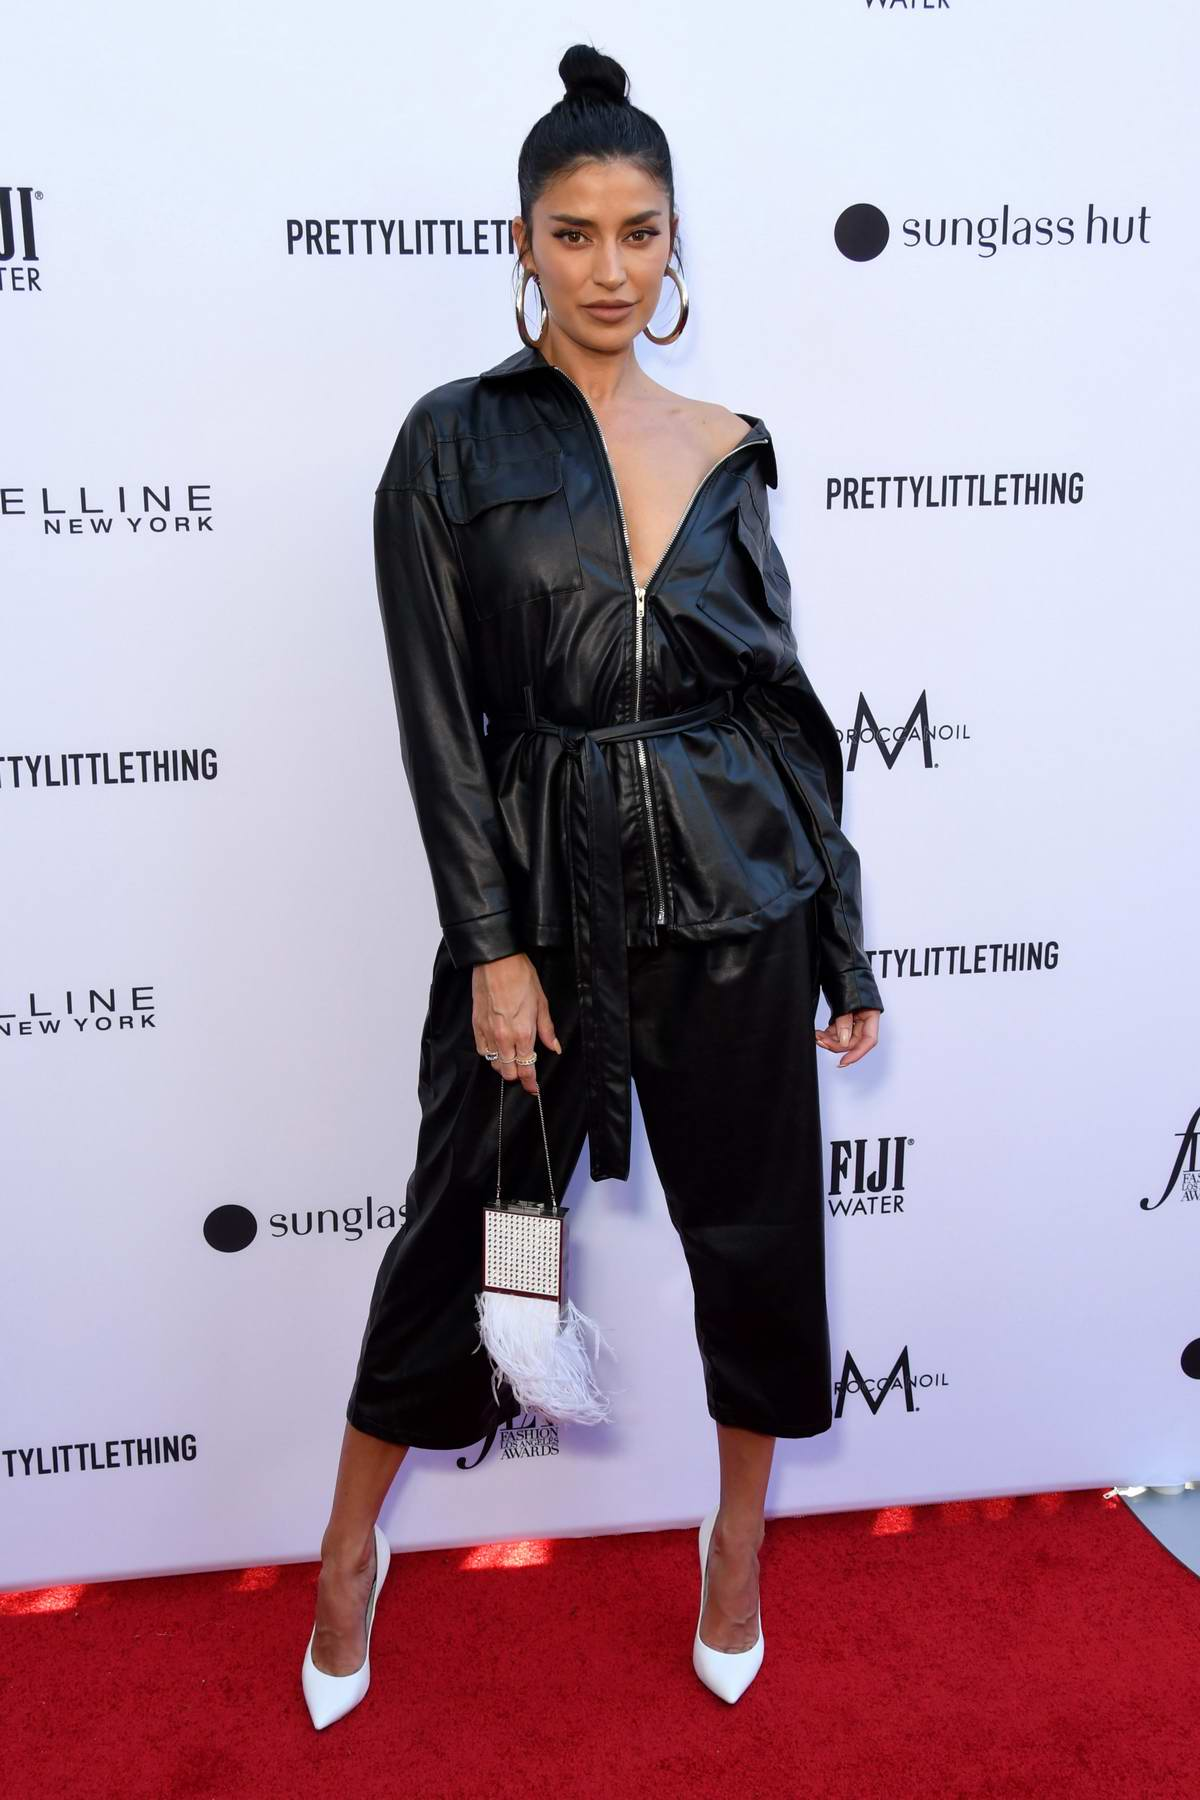 Nicole Williams attends The Daily Front Row's 5th Annual Fashion Awards at The Beverly Hills Hotel in Los Angeles